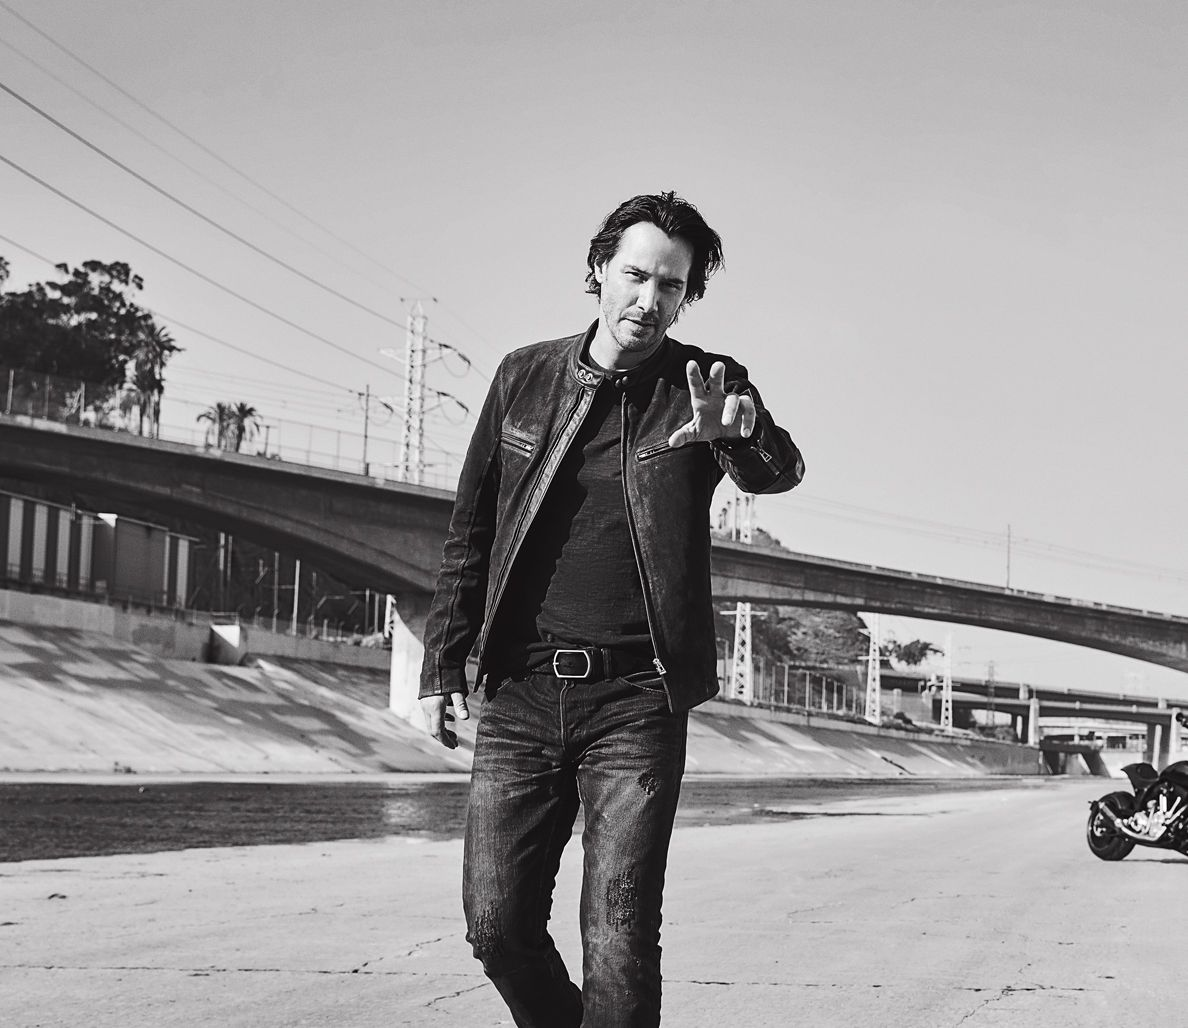 Keanu is everyone keanu reeves pictures - Keanu Reeves On A Lifetime Of Iconic Badassery Why He Eats Steak Before Big Fight